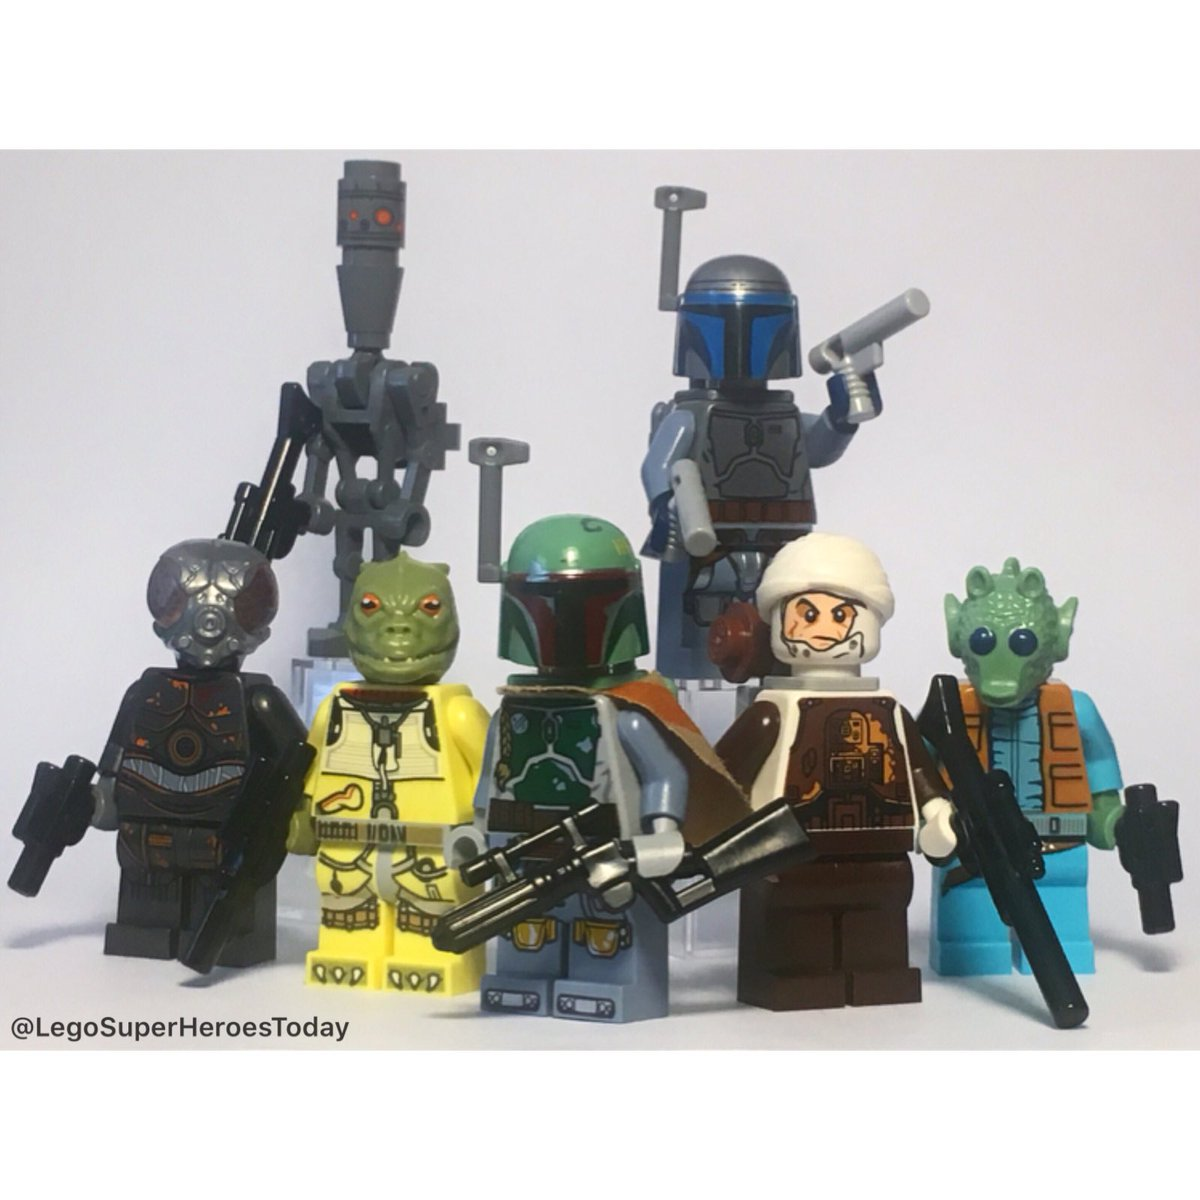 Minisuperheroestoday On Twitter The Bounty Hunters